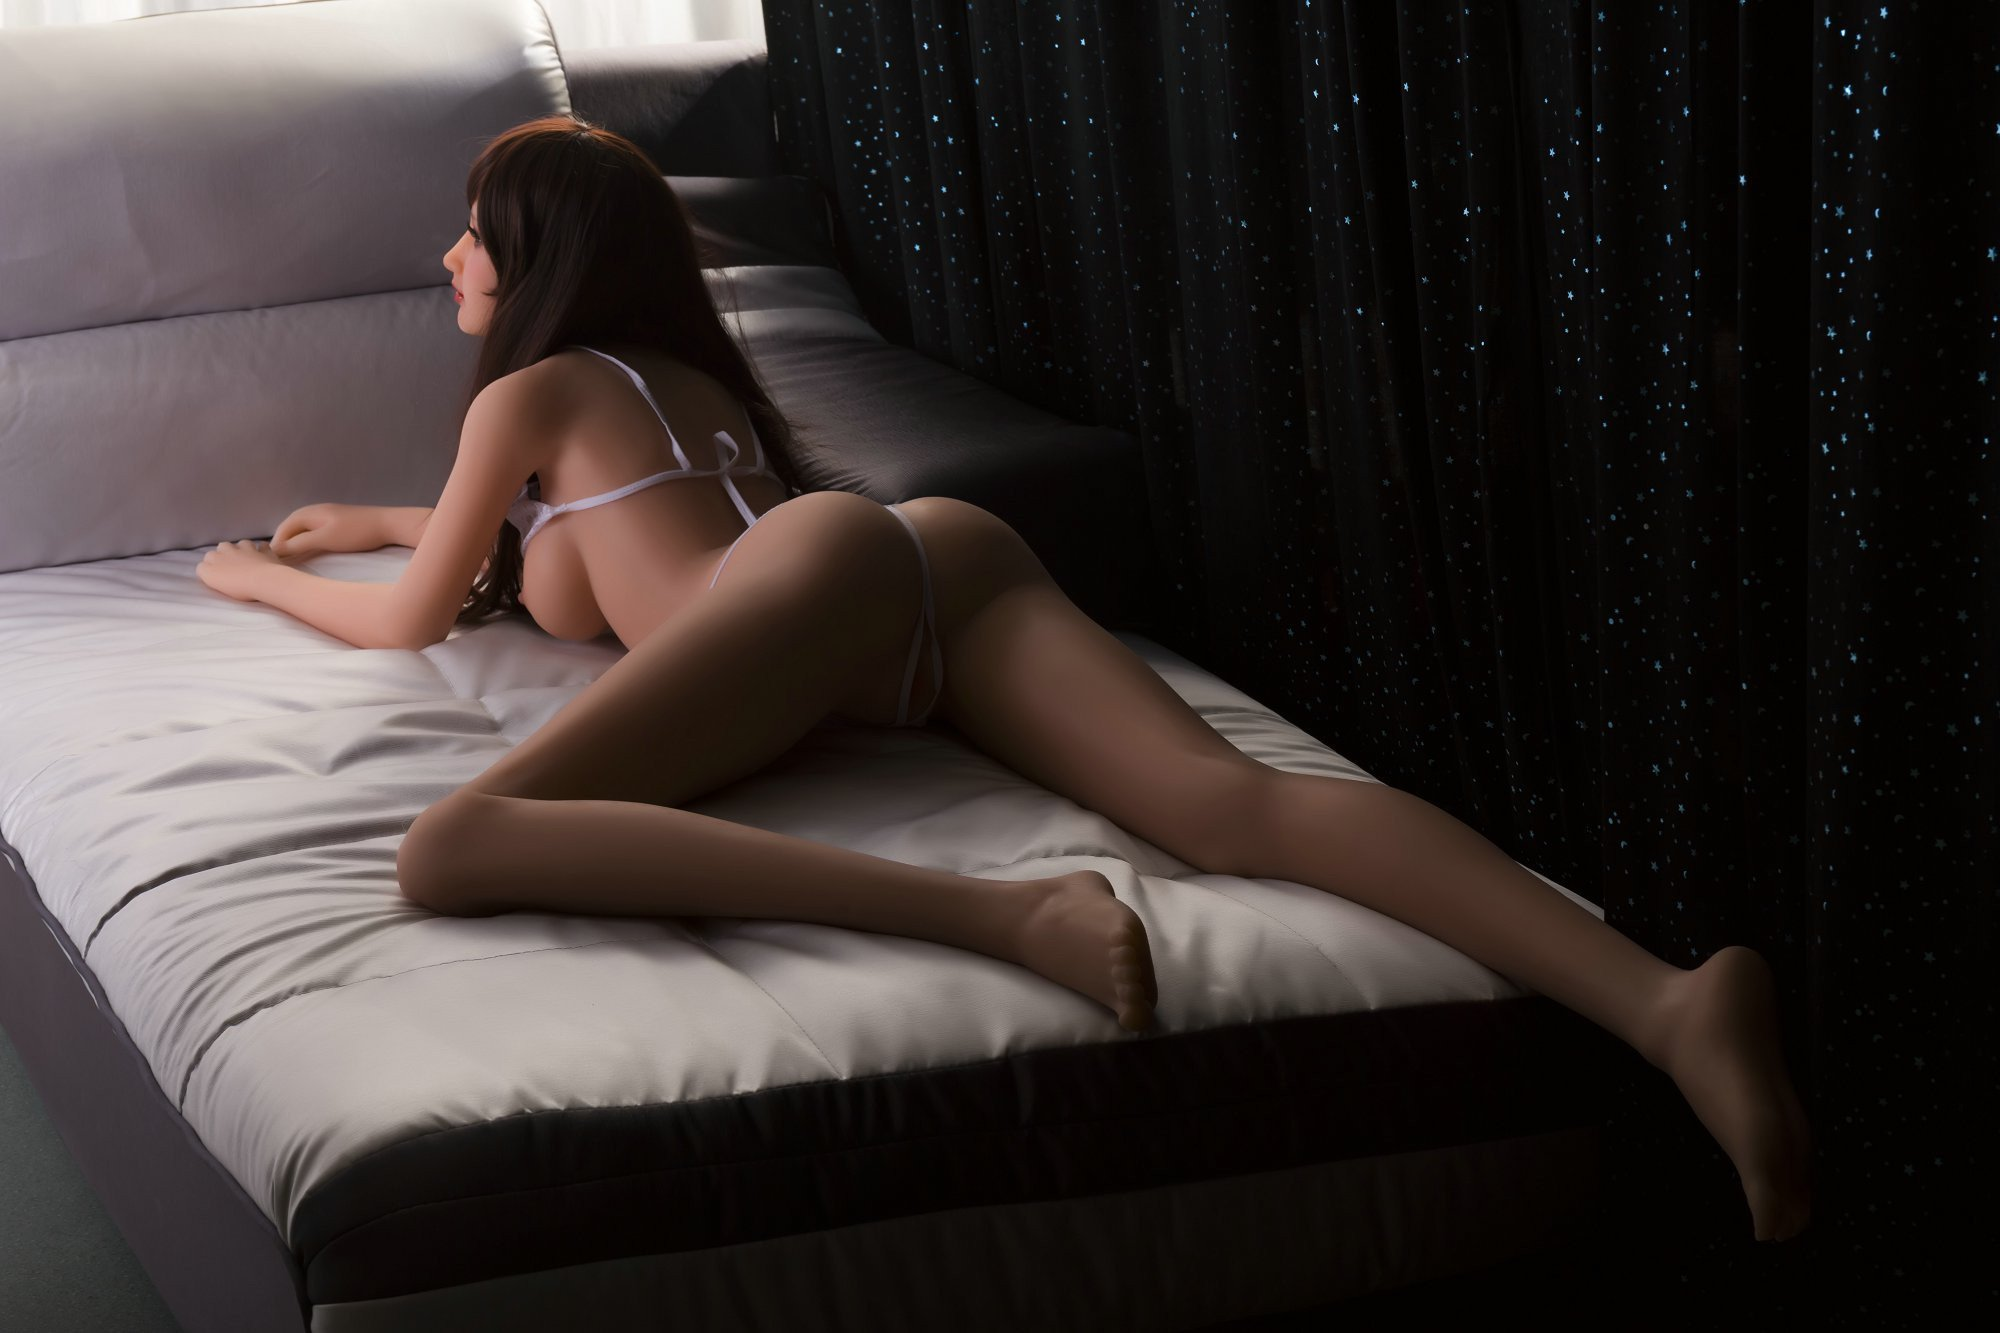 sex doll in sultry pose on bed